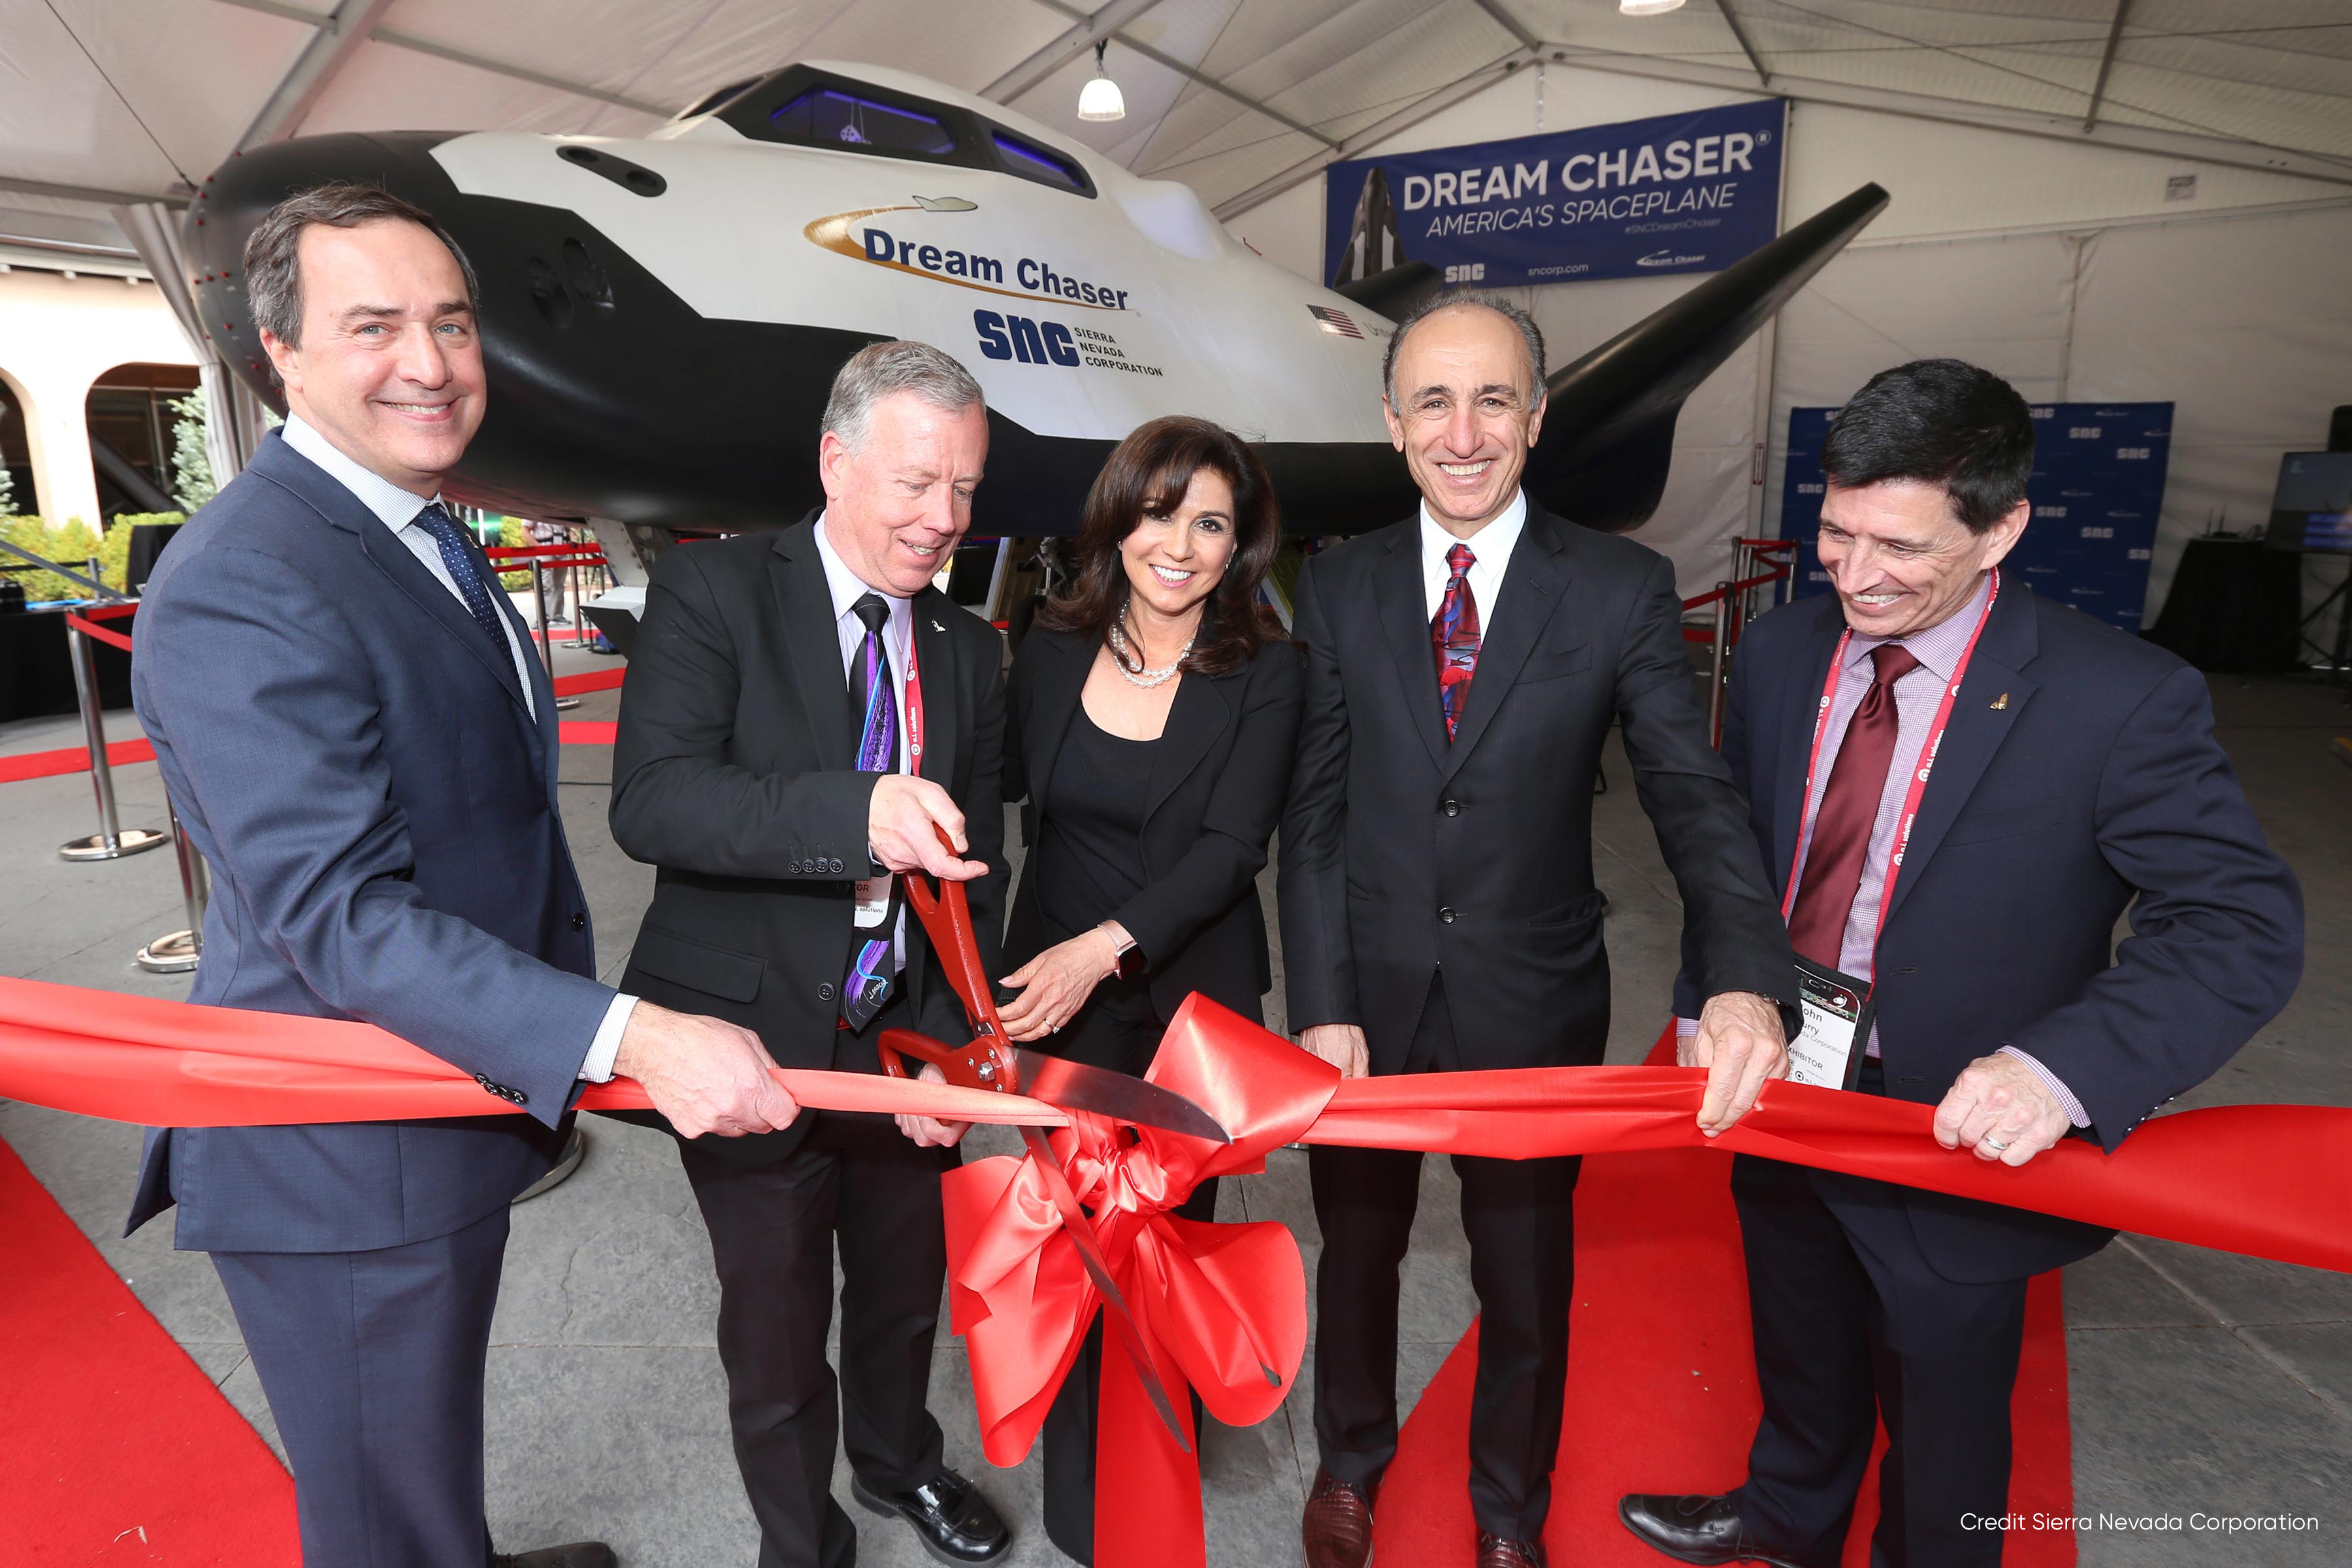 Mark Sirangelo, Steve Lindsey, Eren Ozmen, Fatih Ozmen & John Curry of Sierra Nevada Corporation cut the ribbon at the Dream Chaser exhibit at the 34th Space Symposium.